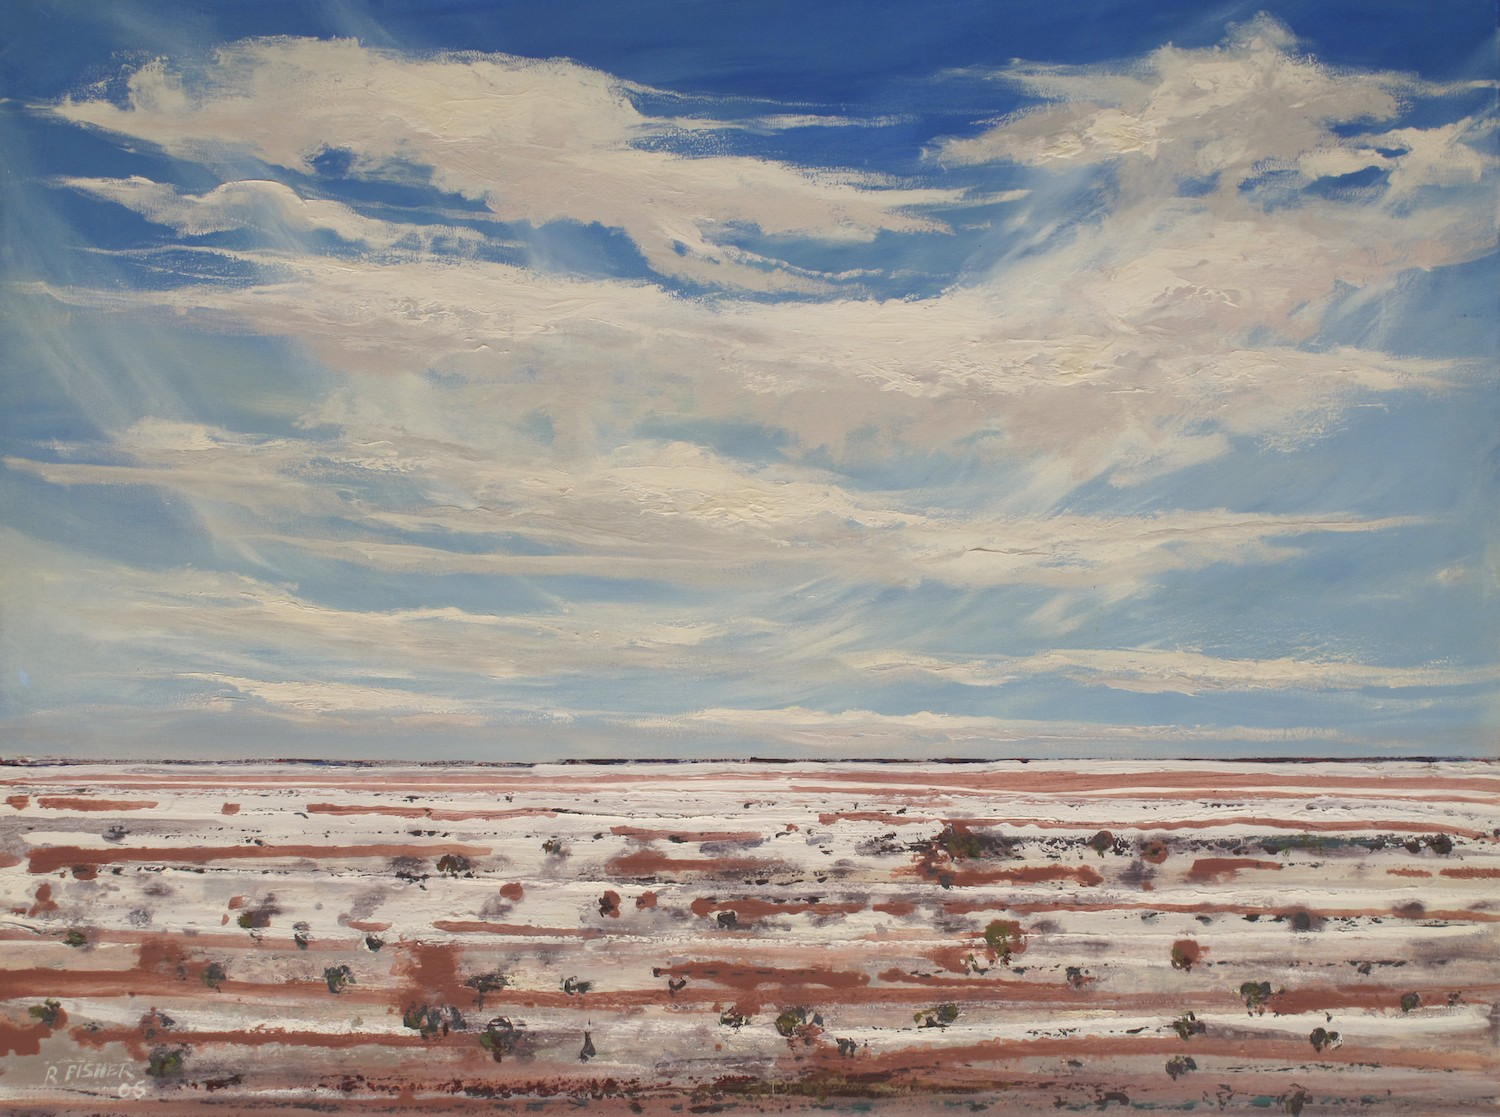 Robert Fisher. Lake Eyre - A Geologist Trek. Oil on Canvas. 91cm x 122cm #12997